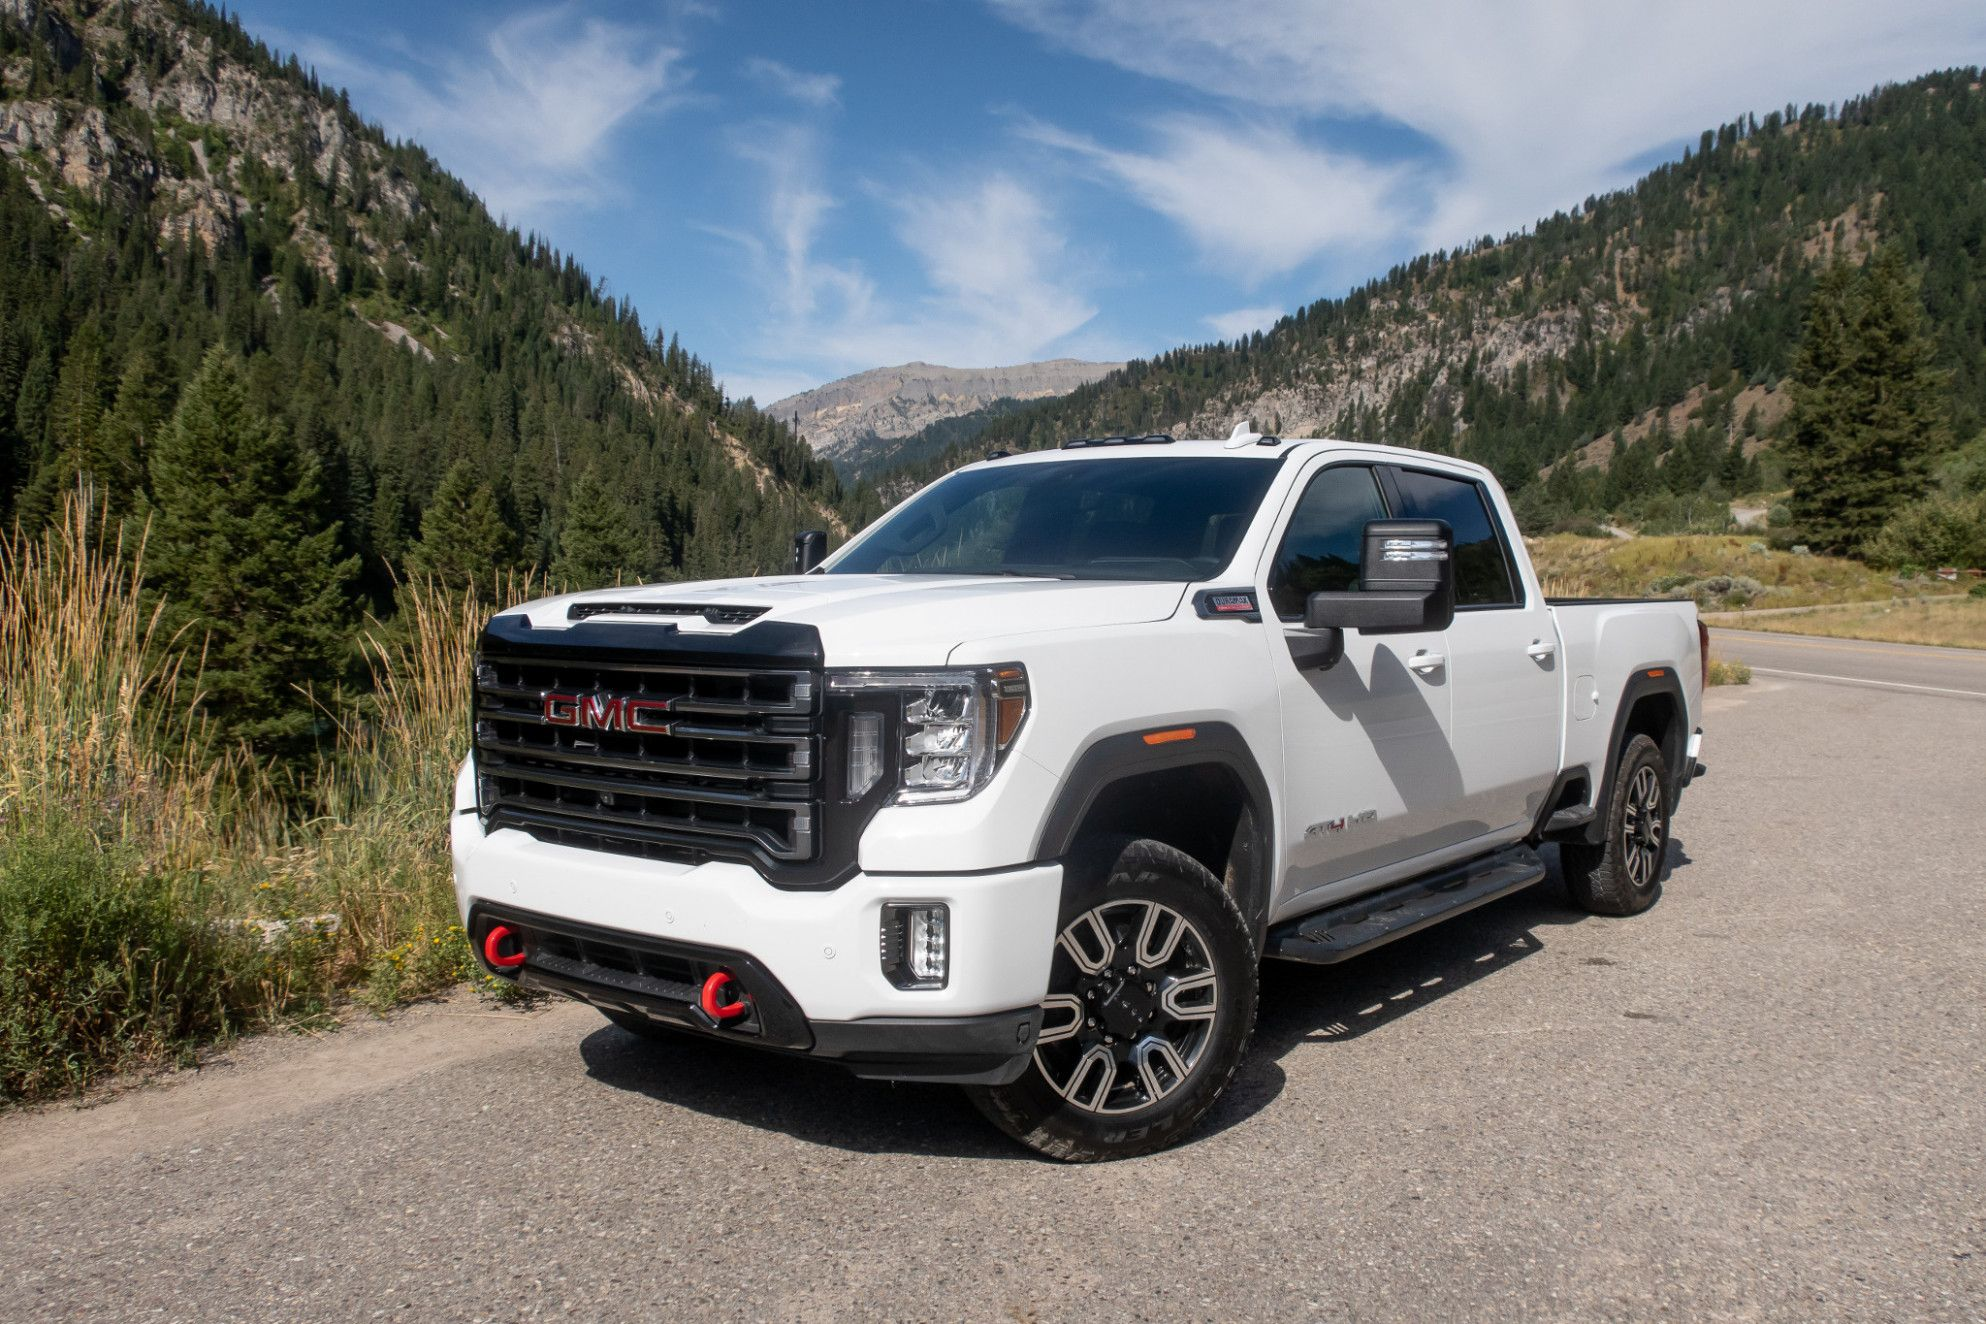 2020 Gmc Sierra 2500 Engine Options Pricing Pickup Trucks Aren T Bare Bones Basic Machines Anymore Tech Appearance Frequently Activate In Commuter Di 2020